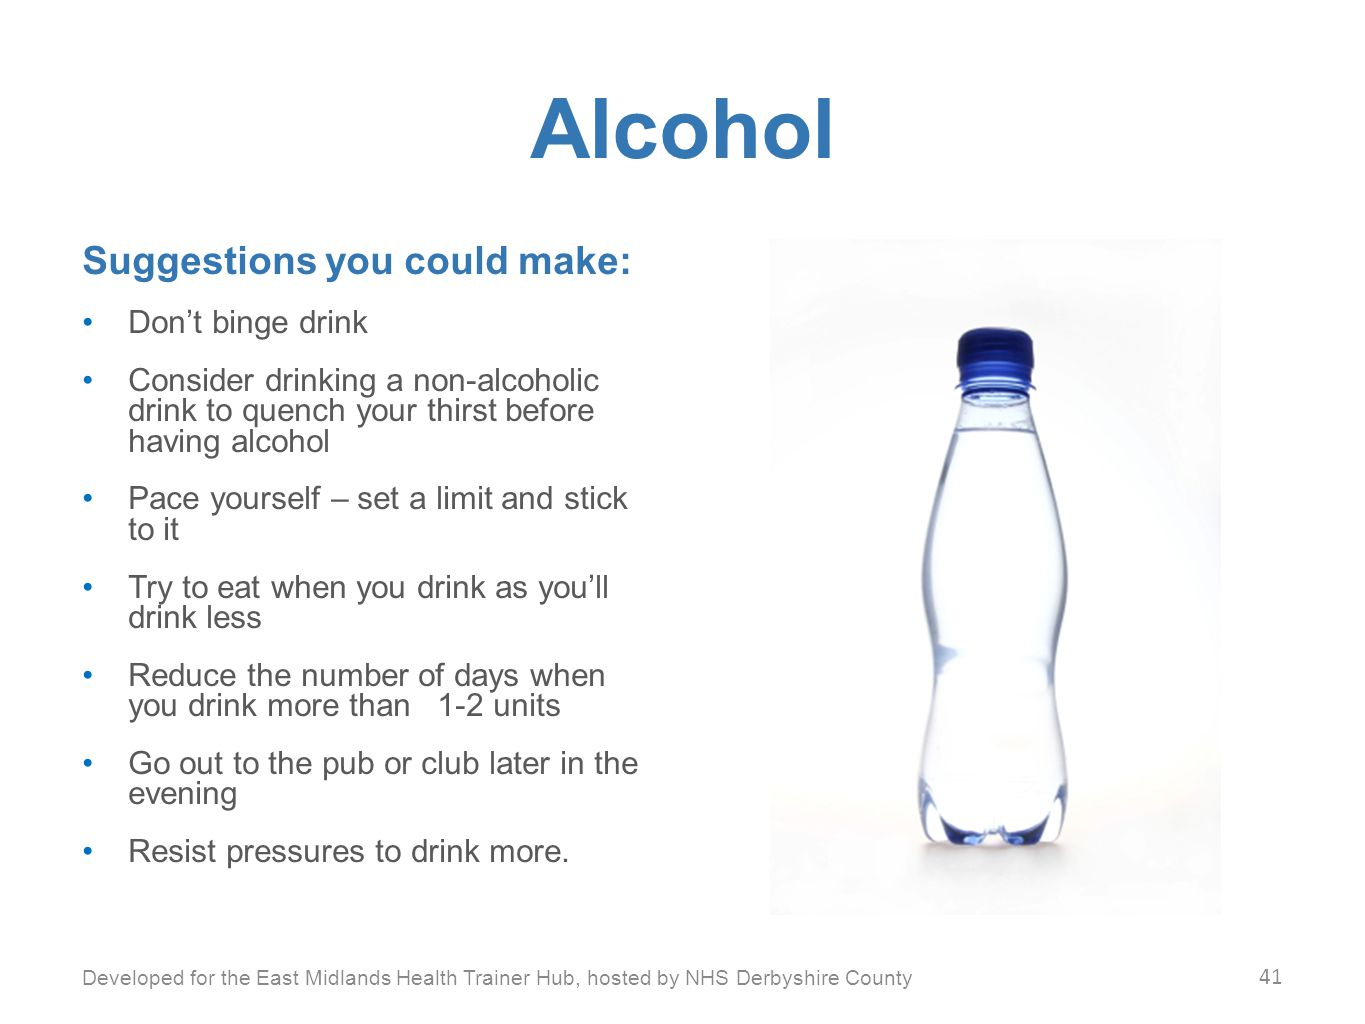 Alcohol Suggestions you could make: Don't binge drink Consider drinking a non-alcoholic drink to quench your thirst before having alcohol Pace yourself – set a limit and stick to it Try to eat when you drink as you'll drink less Reduce the number of days when you drink more than 1-2 units Go out to the pub or club later in the evening Resist pressures to drink more.